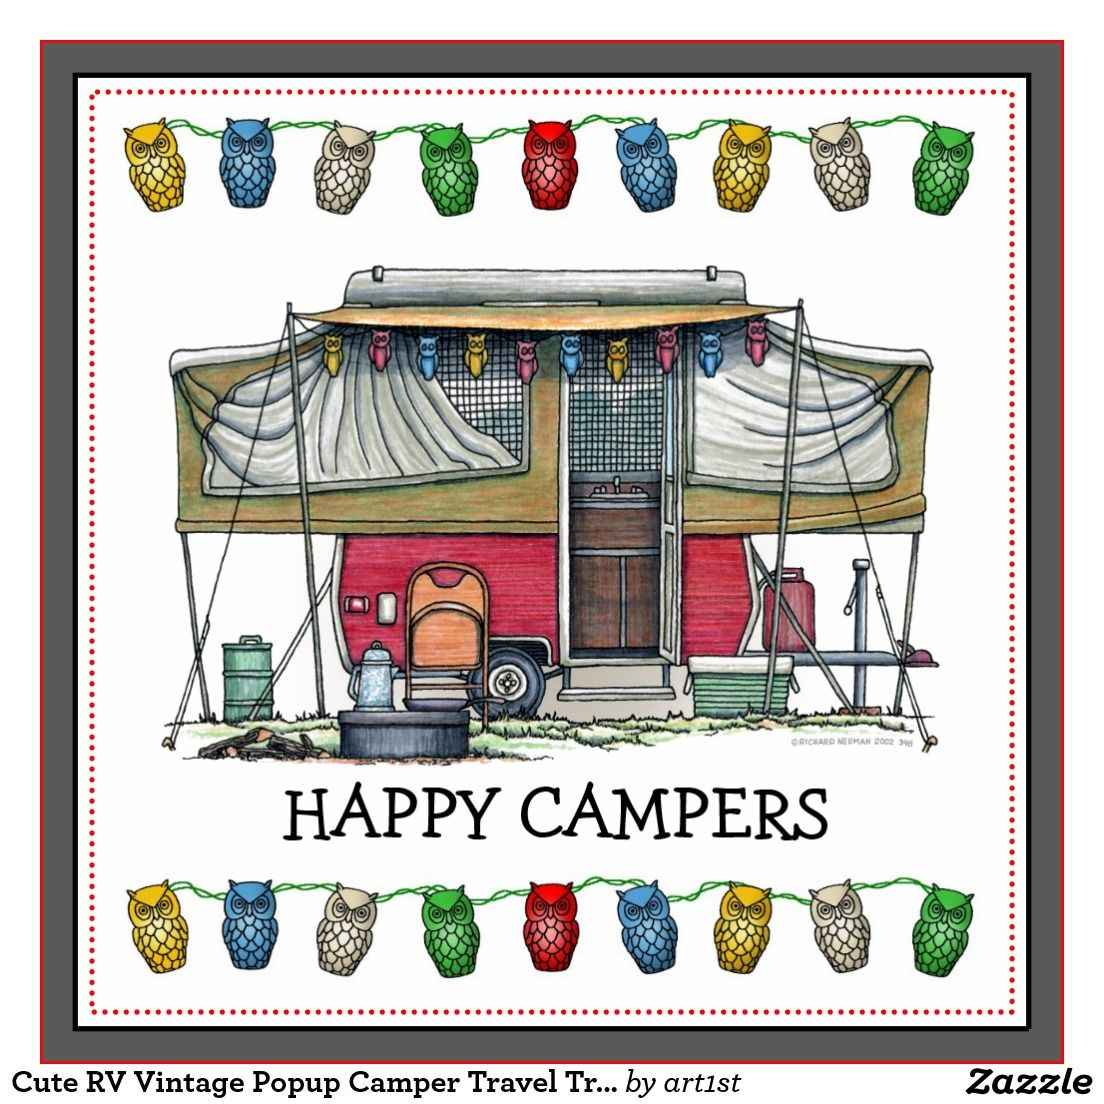 Tent trailer camping on lake clipart vector free library camping with pop up camper clip art - Google Search | peace ... vector free library